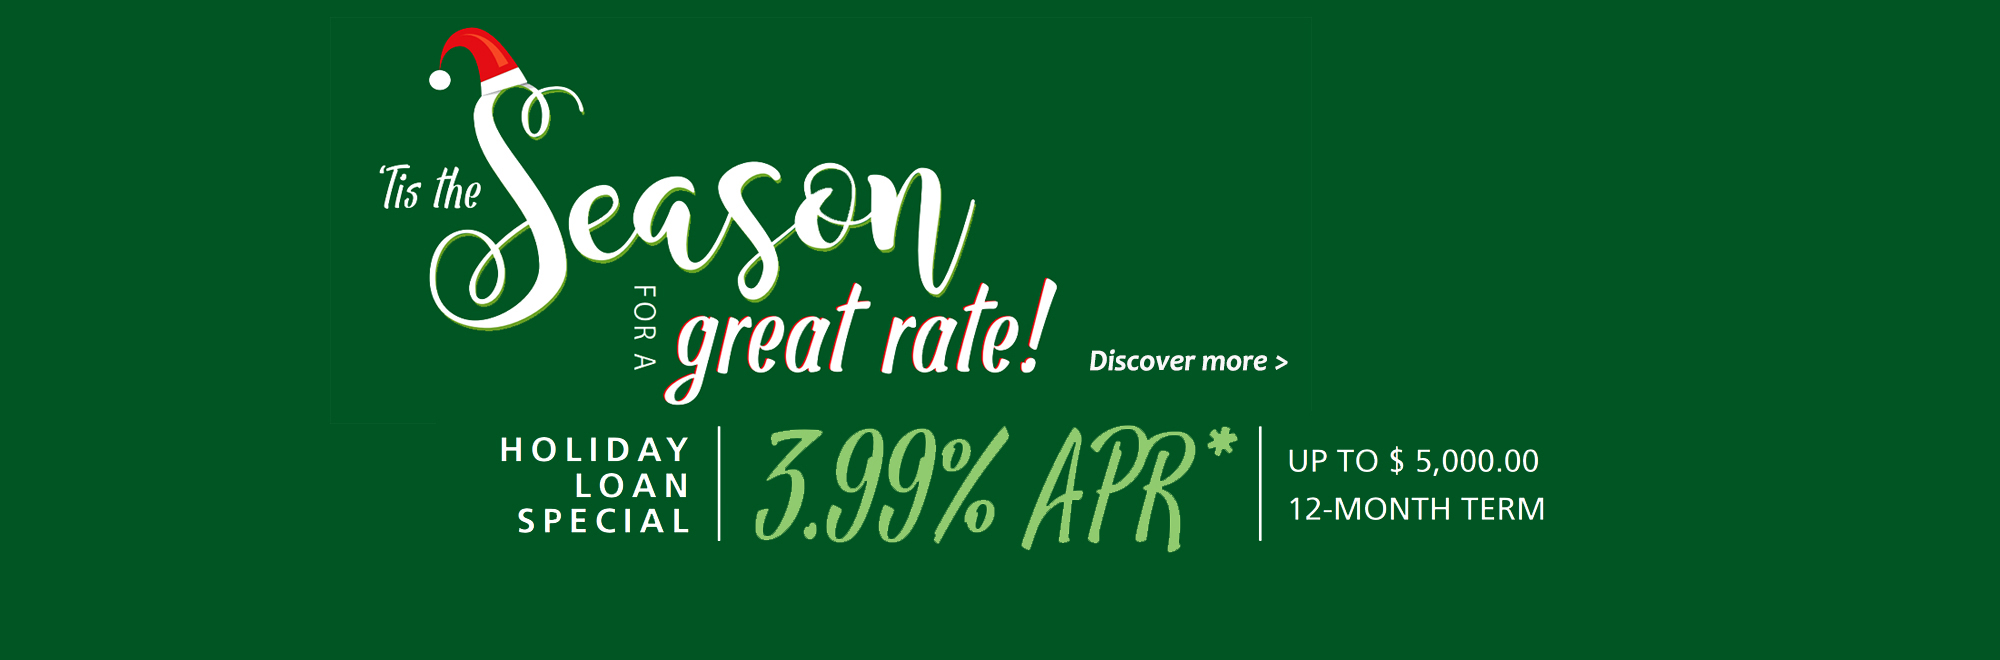 Tis the Season for a Great Rate